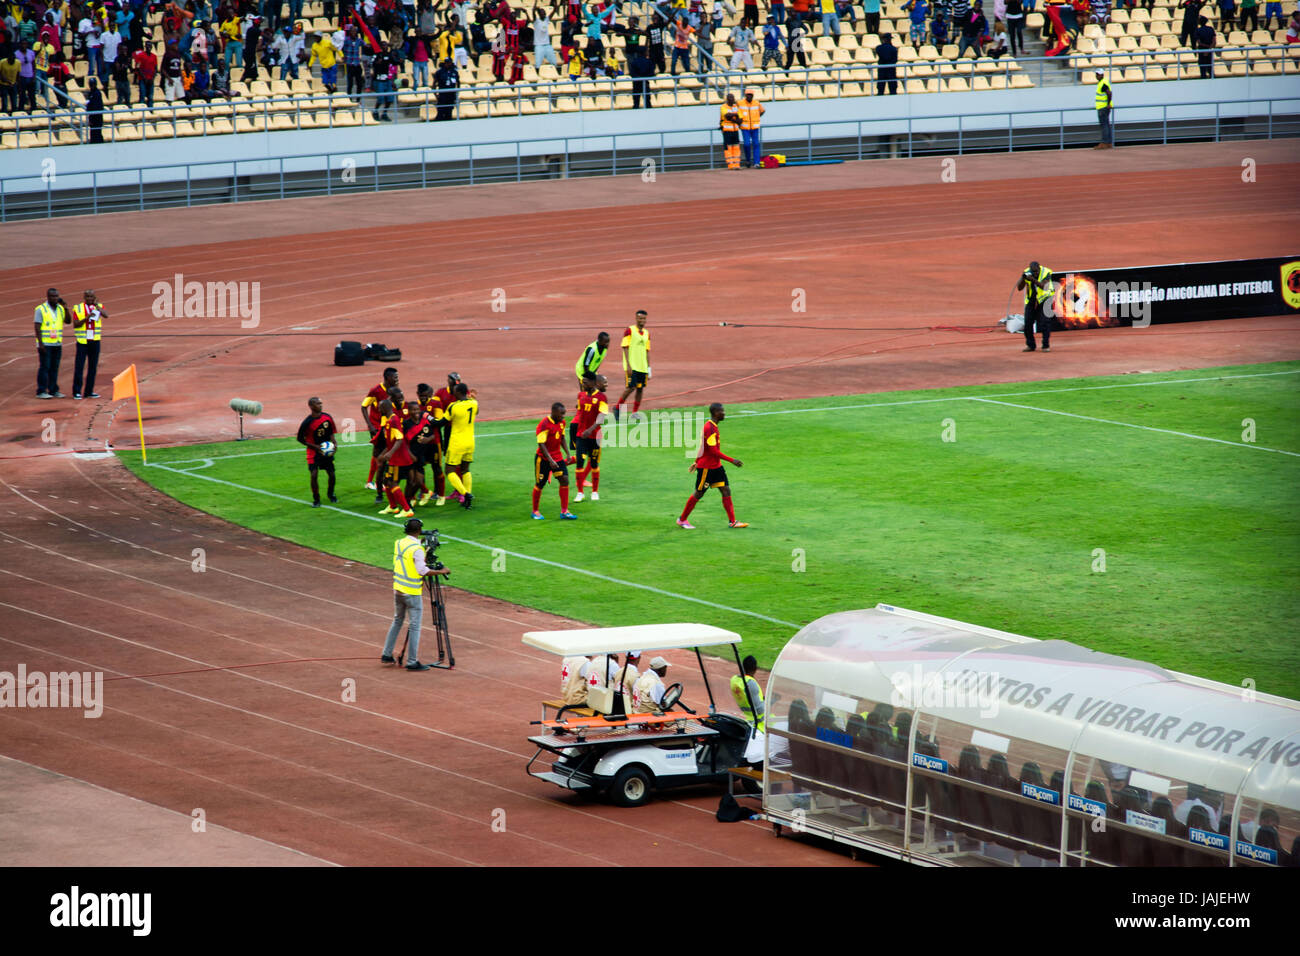 LUANDA, ANGOLA - JULY 04, 2015: Angola takes on South Africa in the group stage of the 2015 African Nations Championship - Stock Image